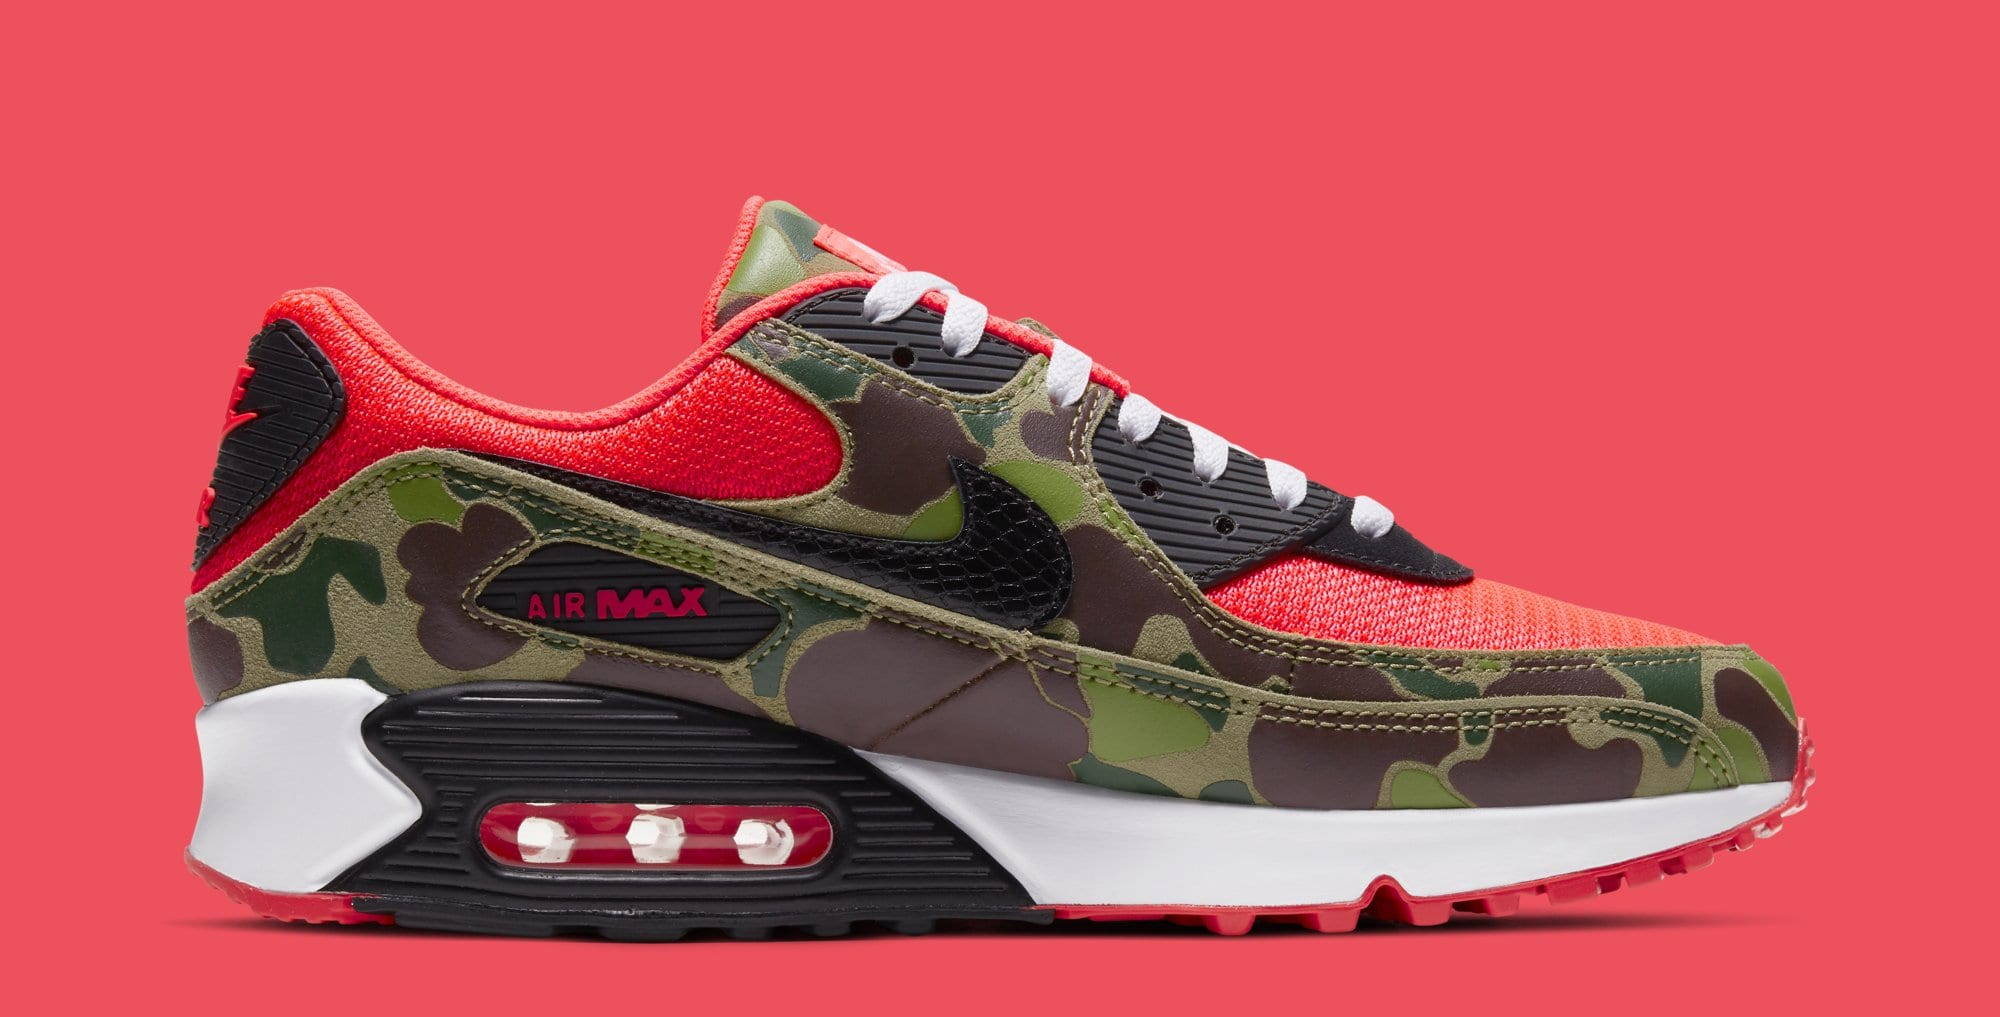 Nike Air Max 90 'Infrared Duck Camo' CW6024-600 (Medial)